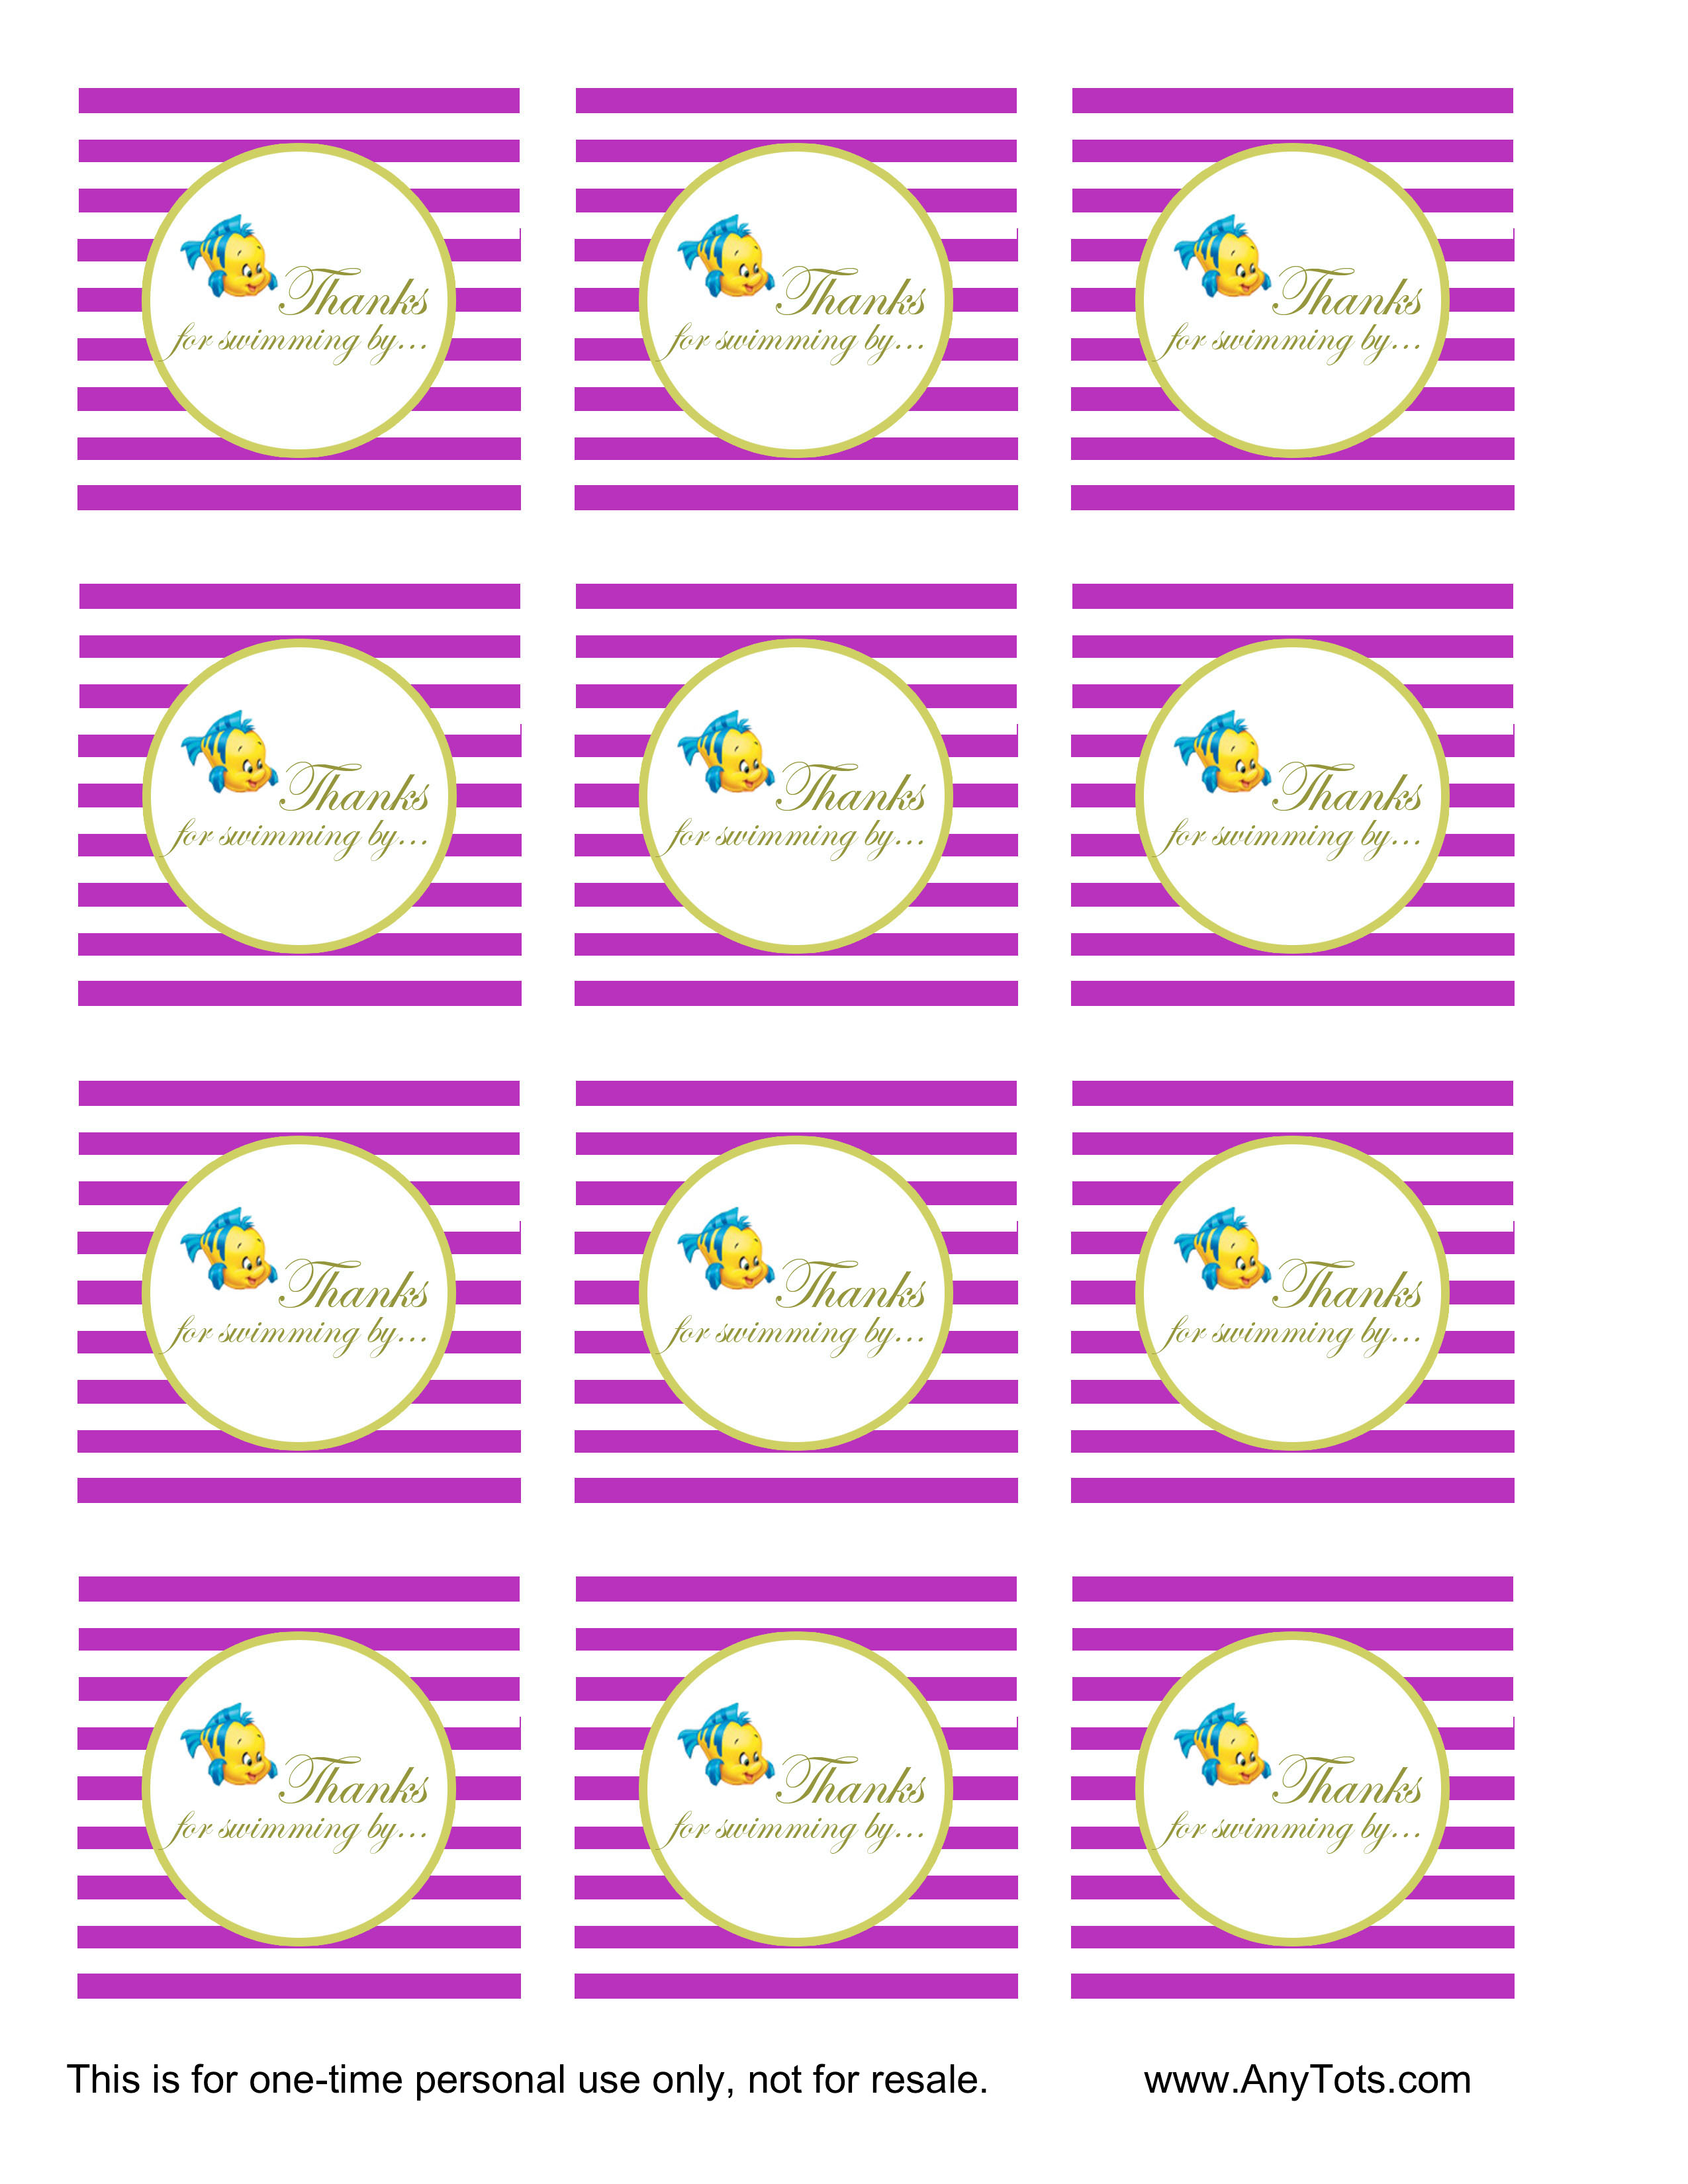 graphic about Free Printable Favor Tags referred to as 2 Mermaid No cost Printable Celebration Want Tags